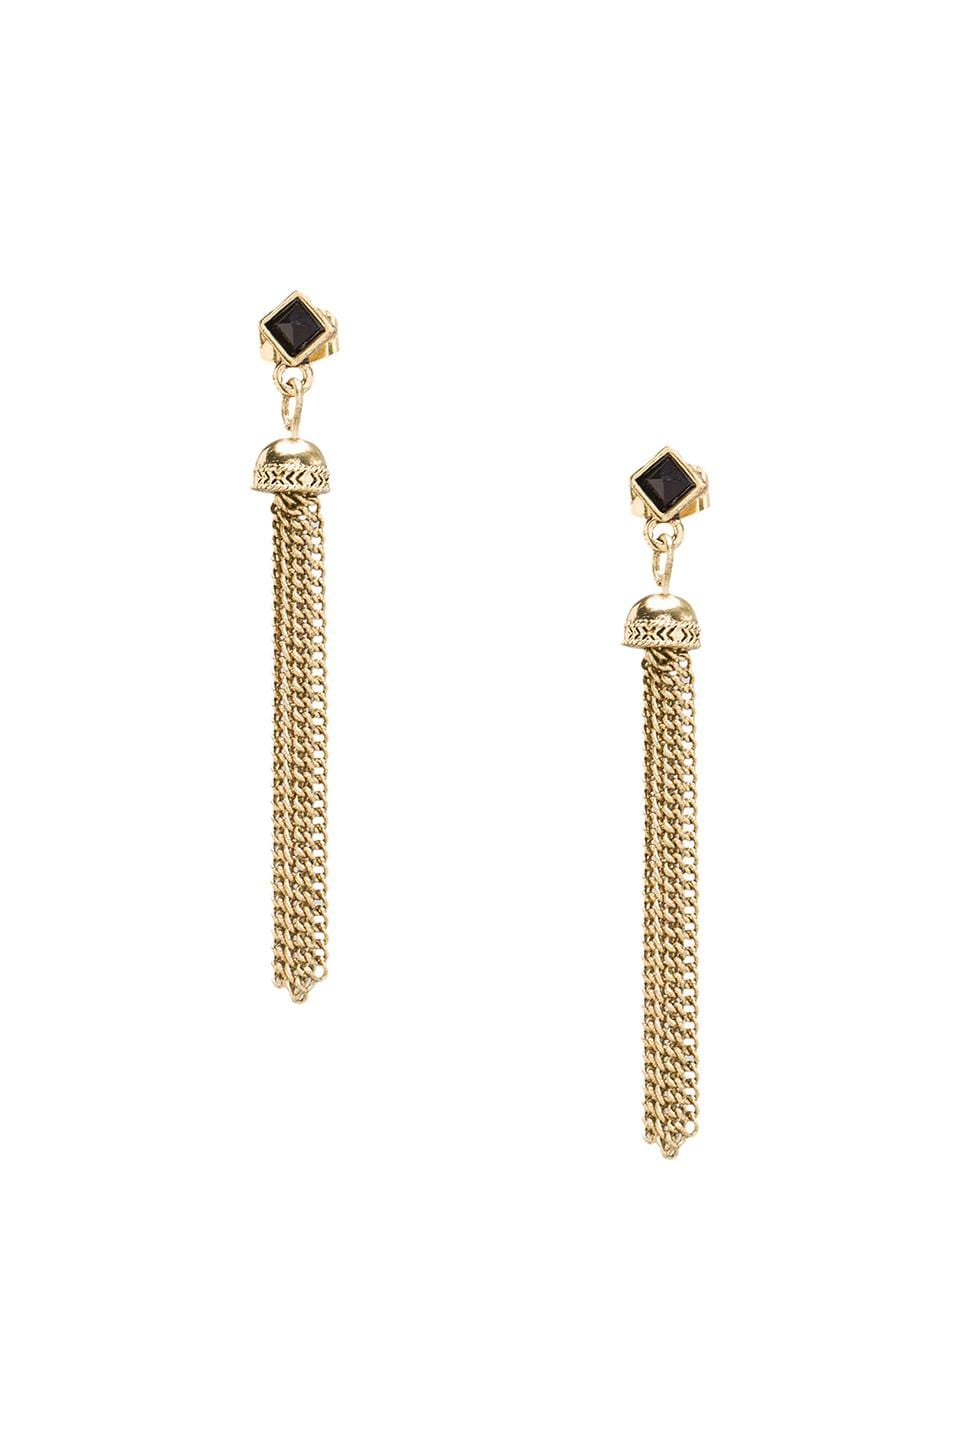 House of Harlow Chainette Earrings in Gold